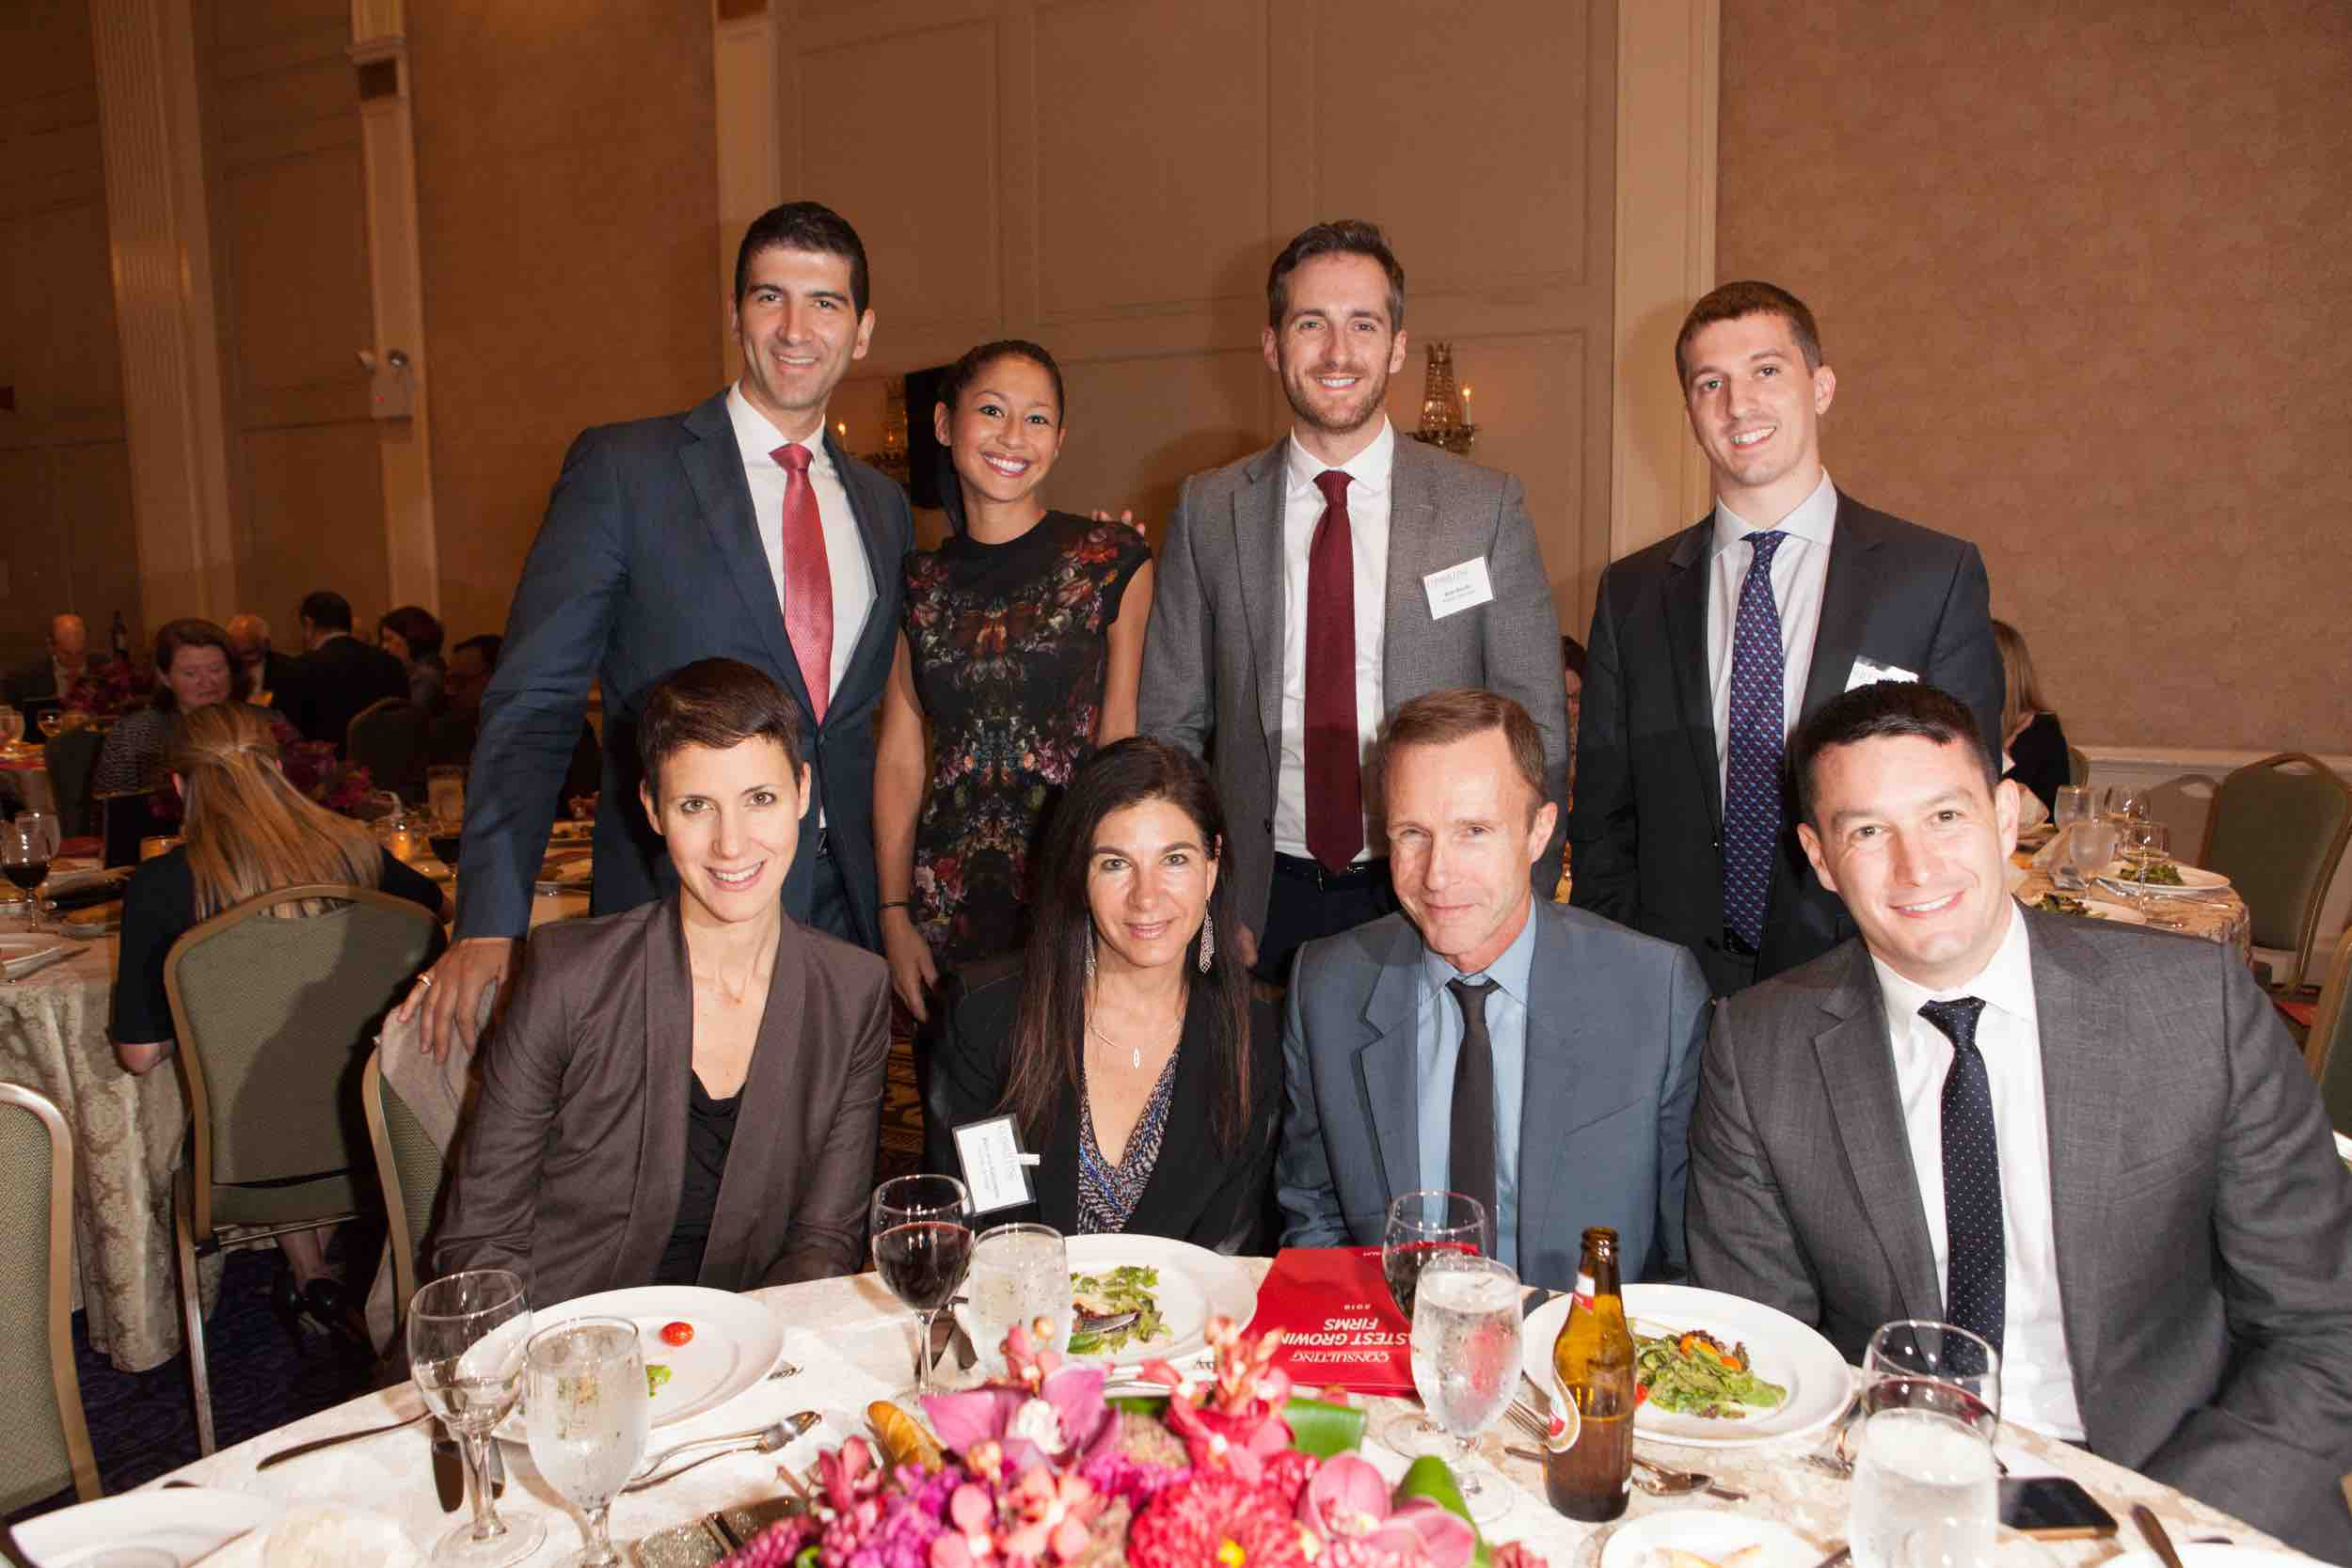 The 2016 Fastest Growing Firms: Awards Dinner Gala